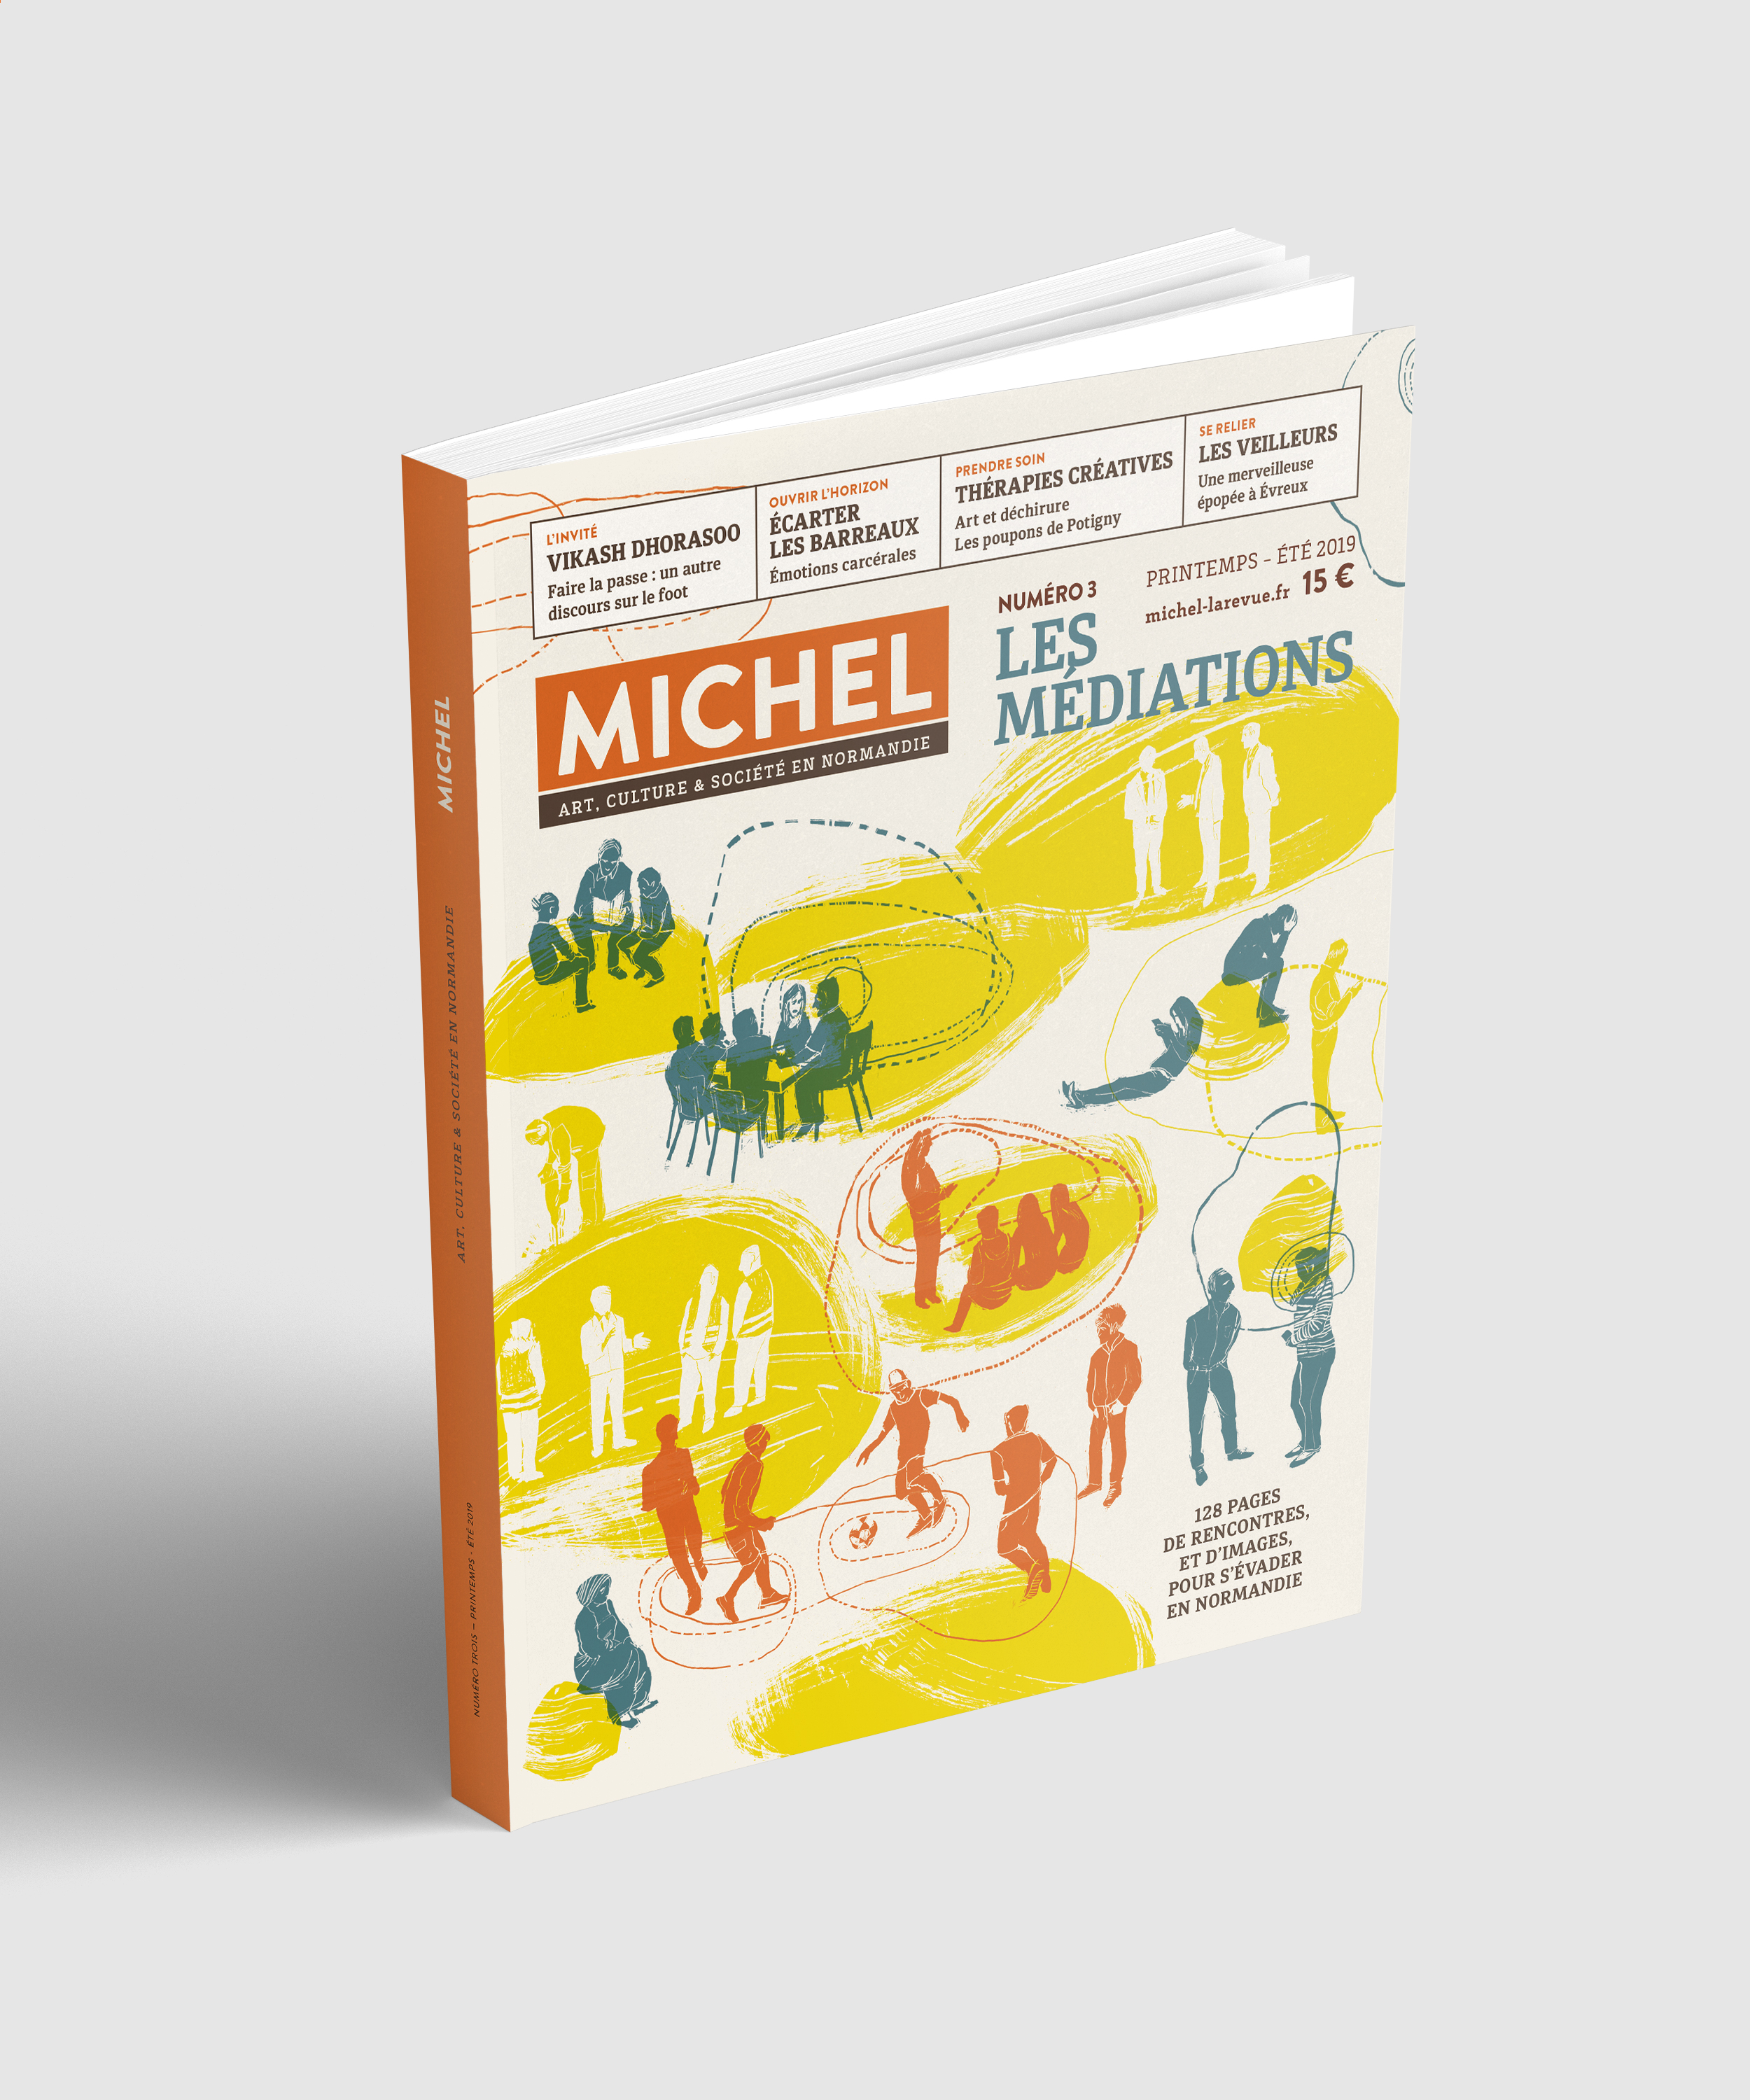 Nouveau : MICHEL N°3 «MEDIATIONS»